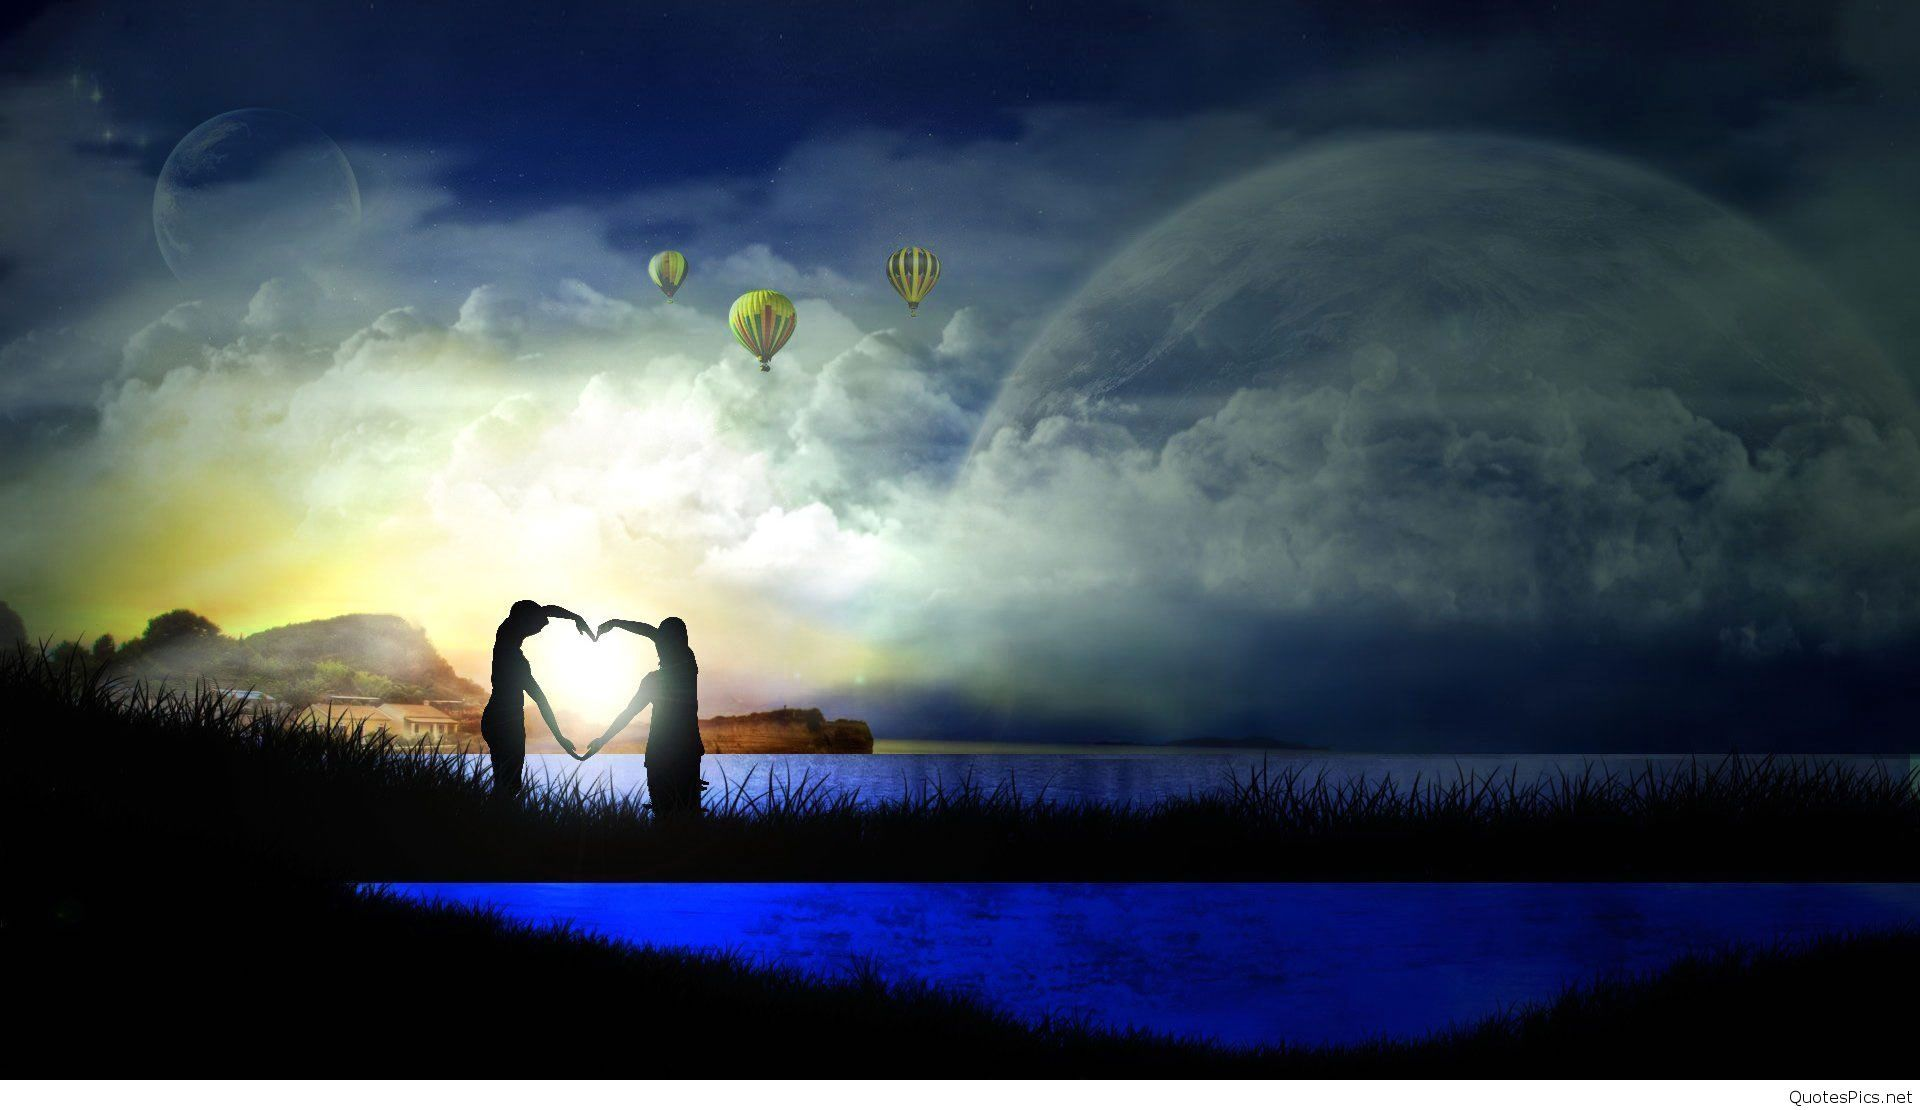 fantasy-couple-love-animated-full-screen-high-resolution-wallpaper-free-desktop-background ...